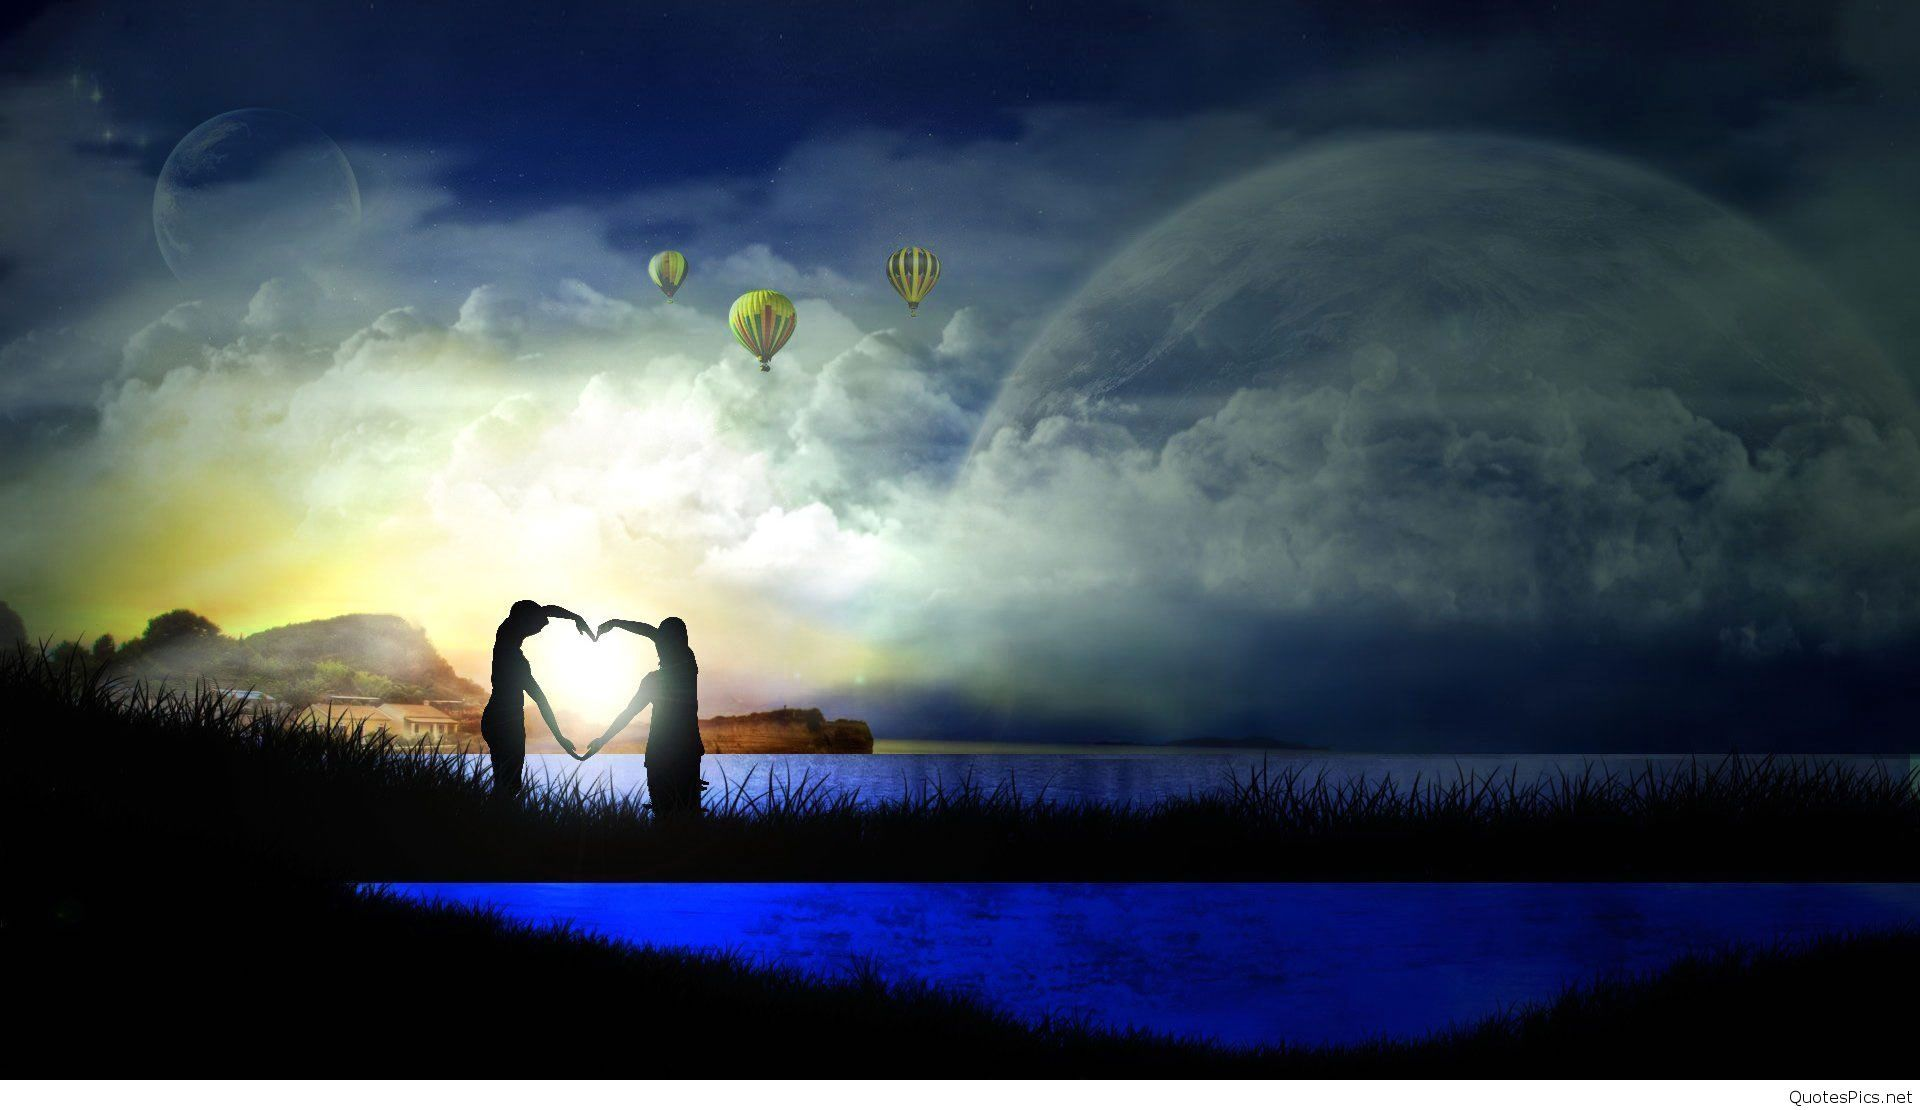 fantasy-couple-love-animated-full-screen-high-resolution-wallpaper-free-desktop-background ...